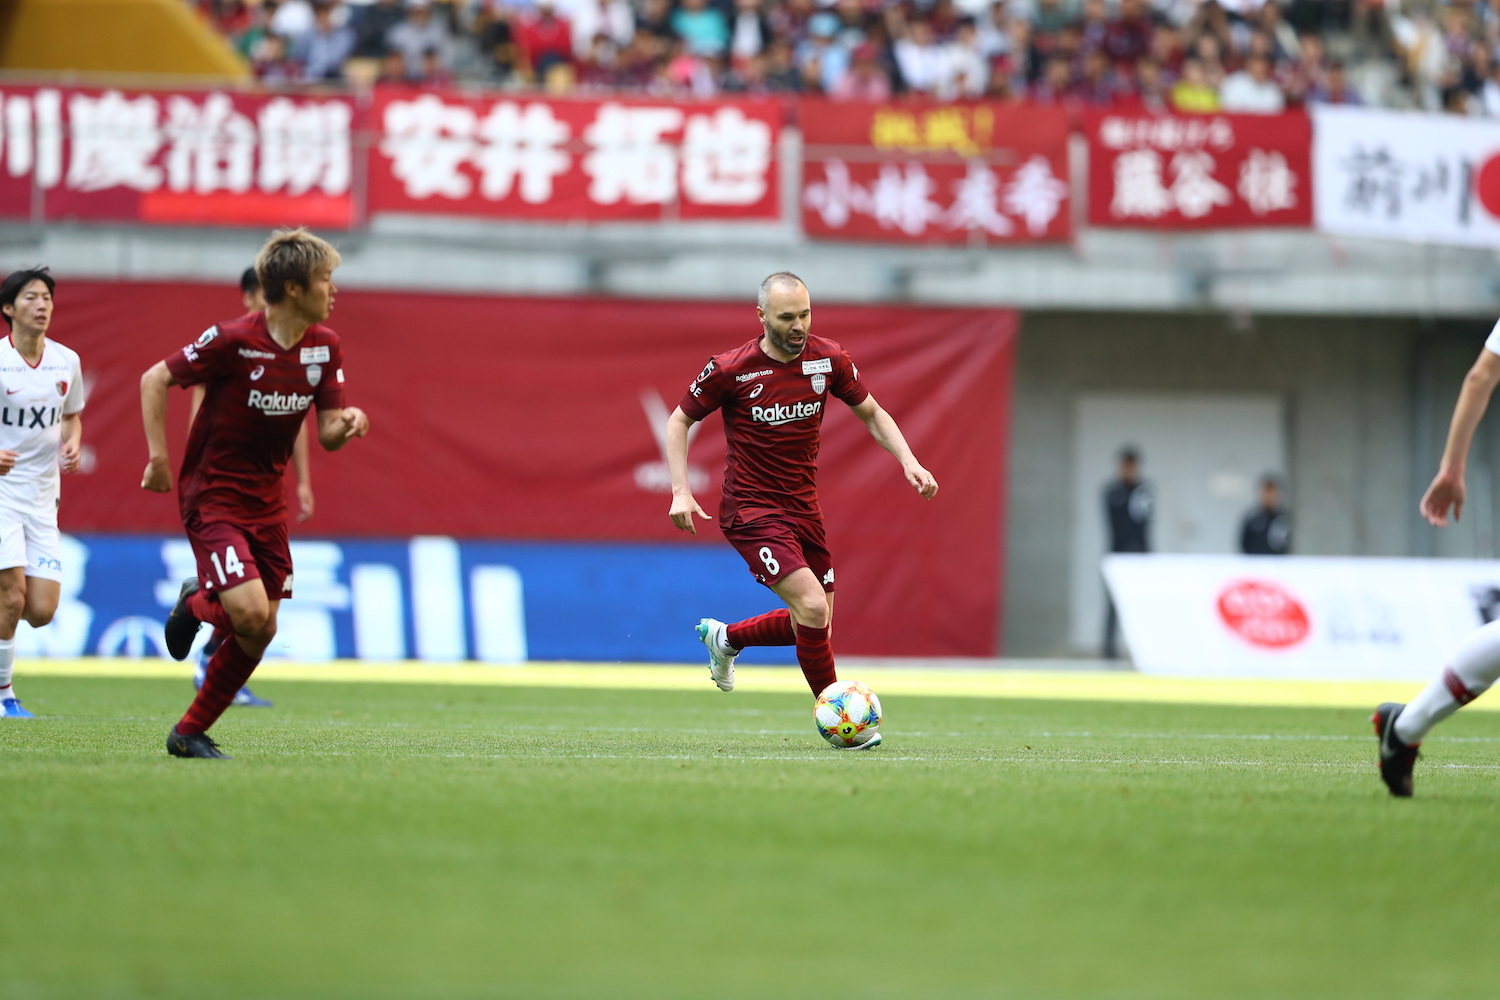 Rakuten Sports is a live streaming, video on demand and community platform designed to power live sports matches from top leagues and teams around the globe